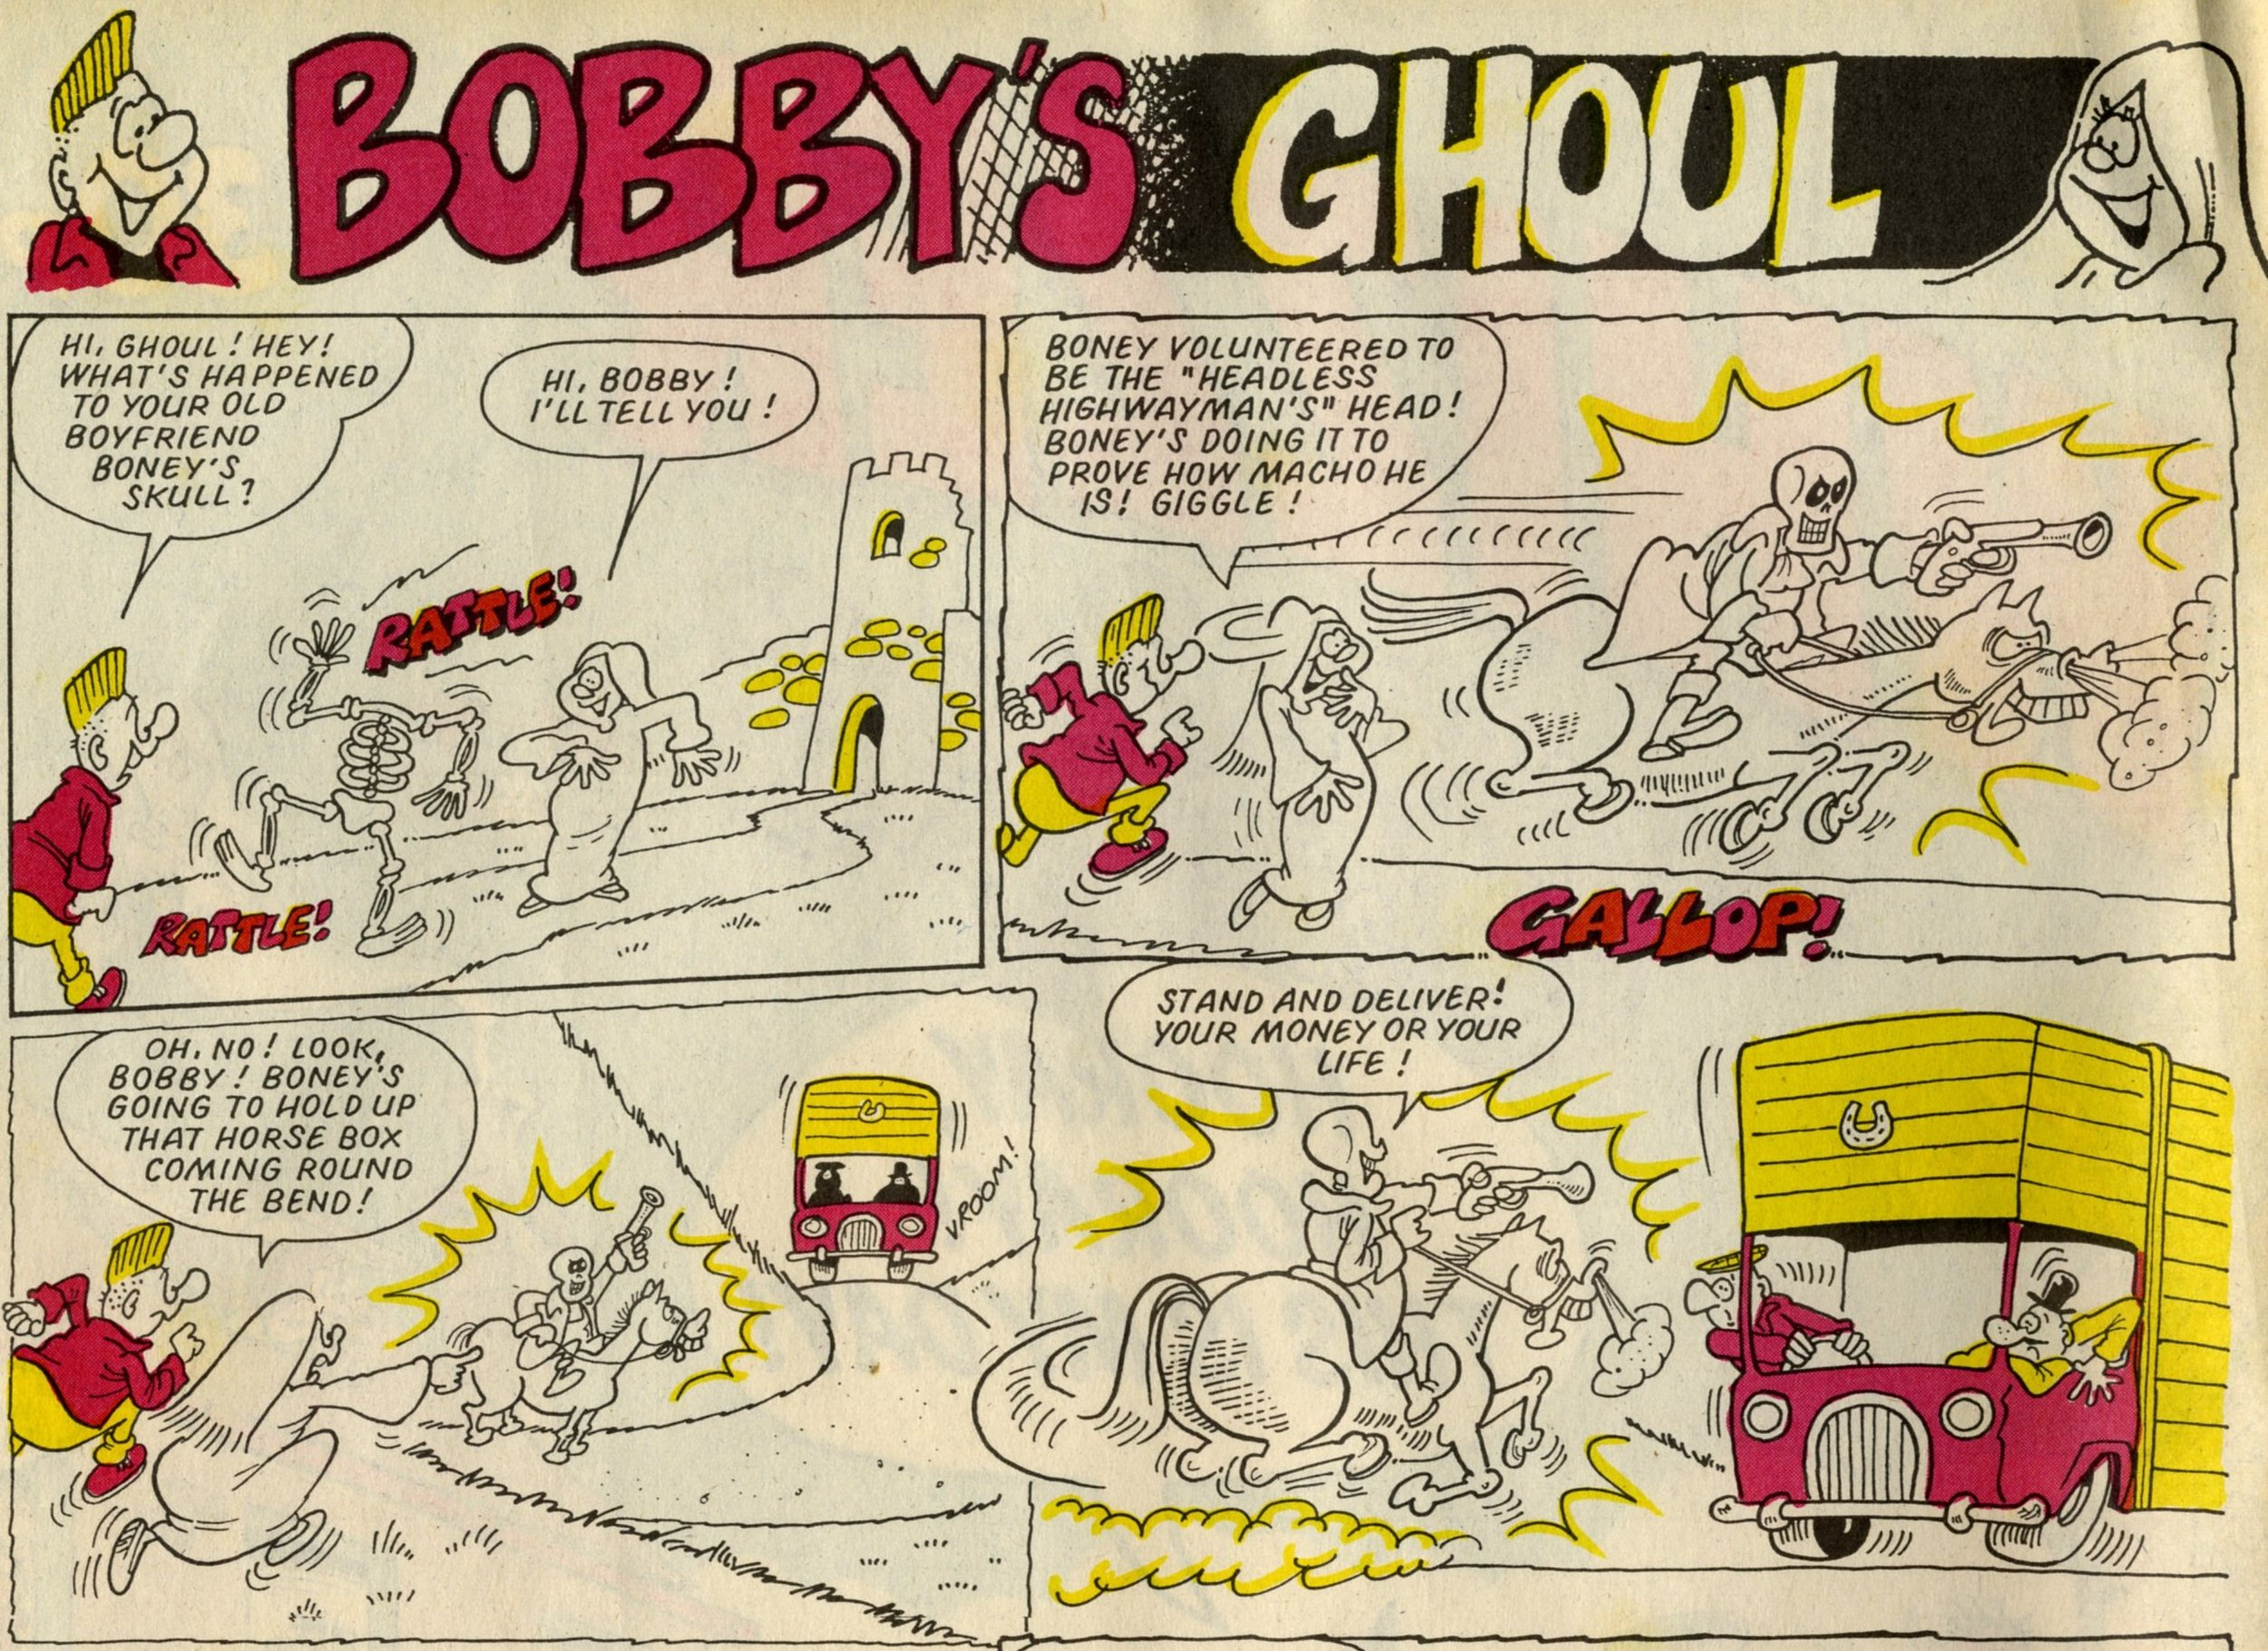 Bobby's Ghoul: Anthony Hutchings (artist)